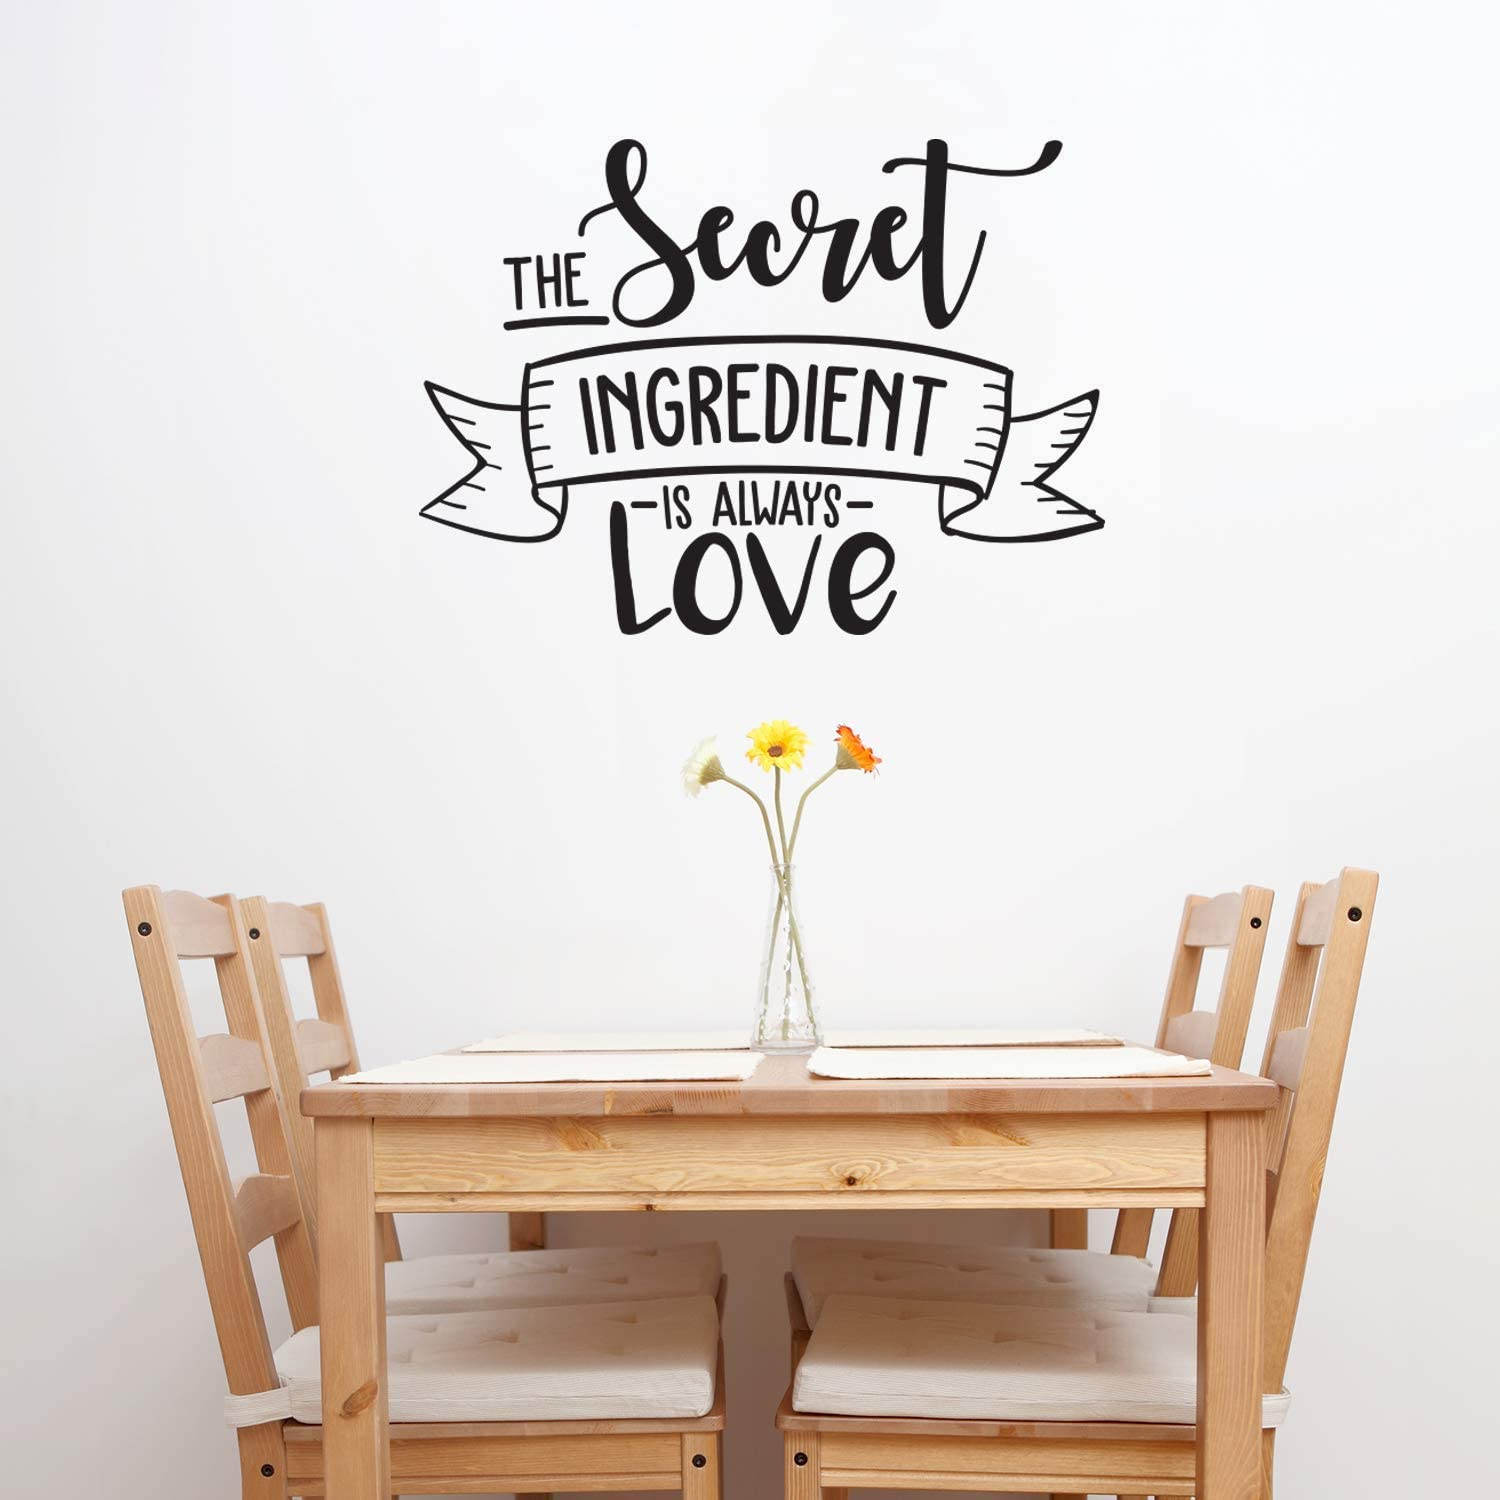 Vinyl Wall Art Decal - The Secret Ingredient is Always Love - 22